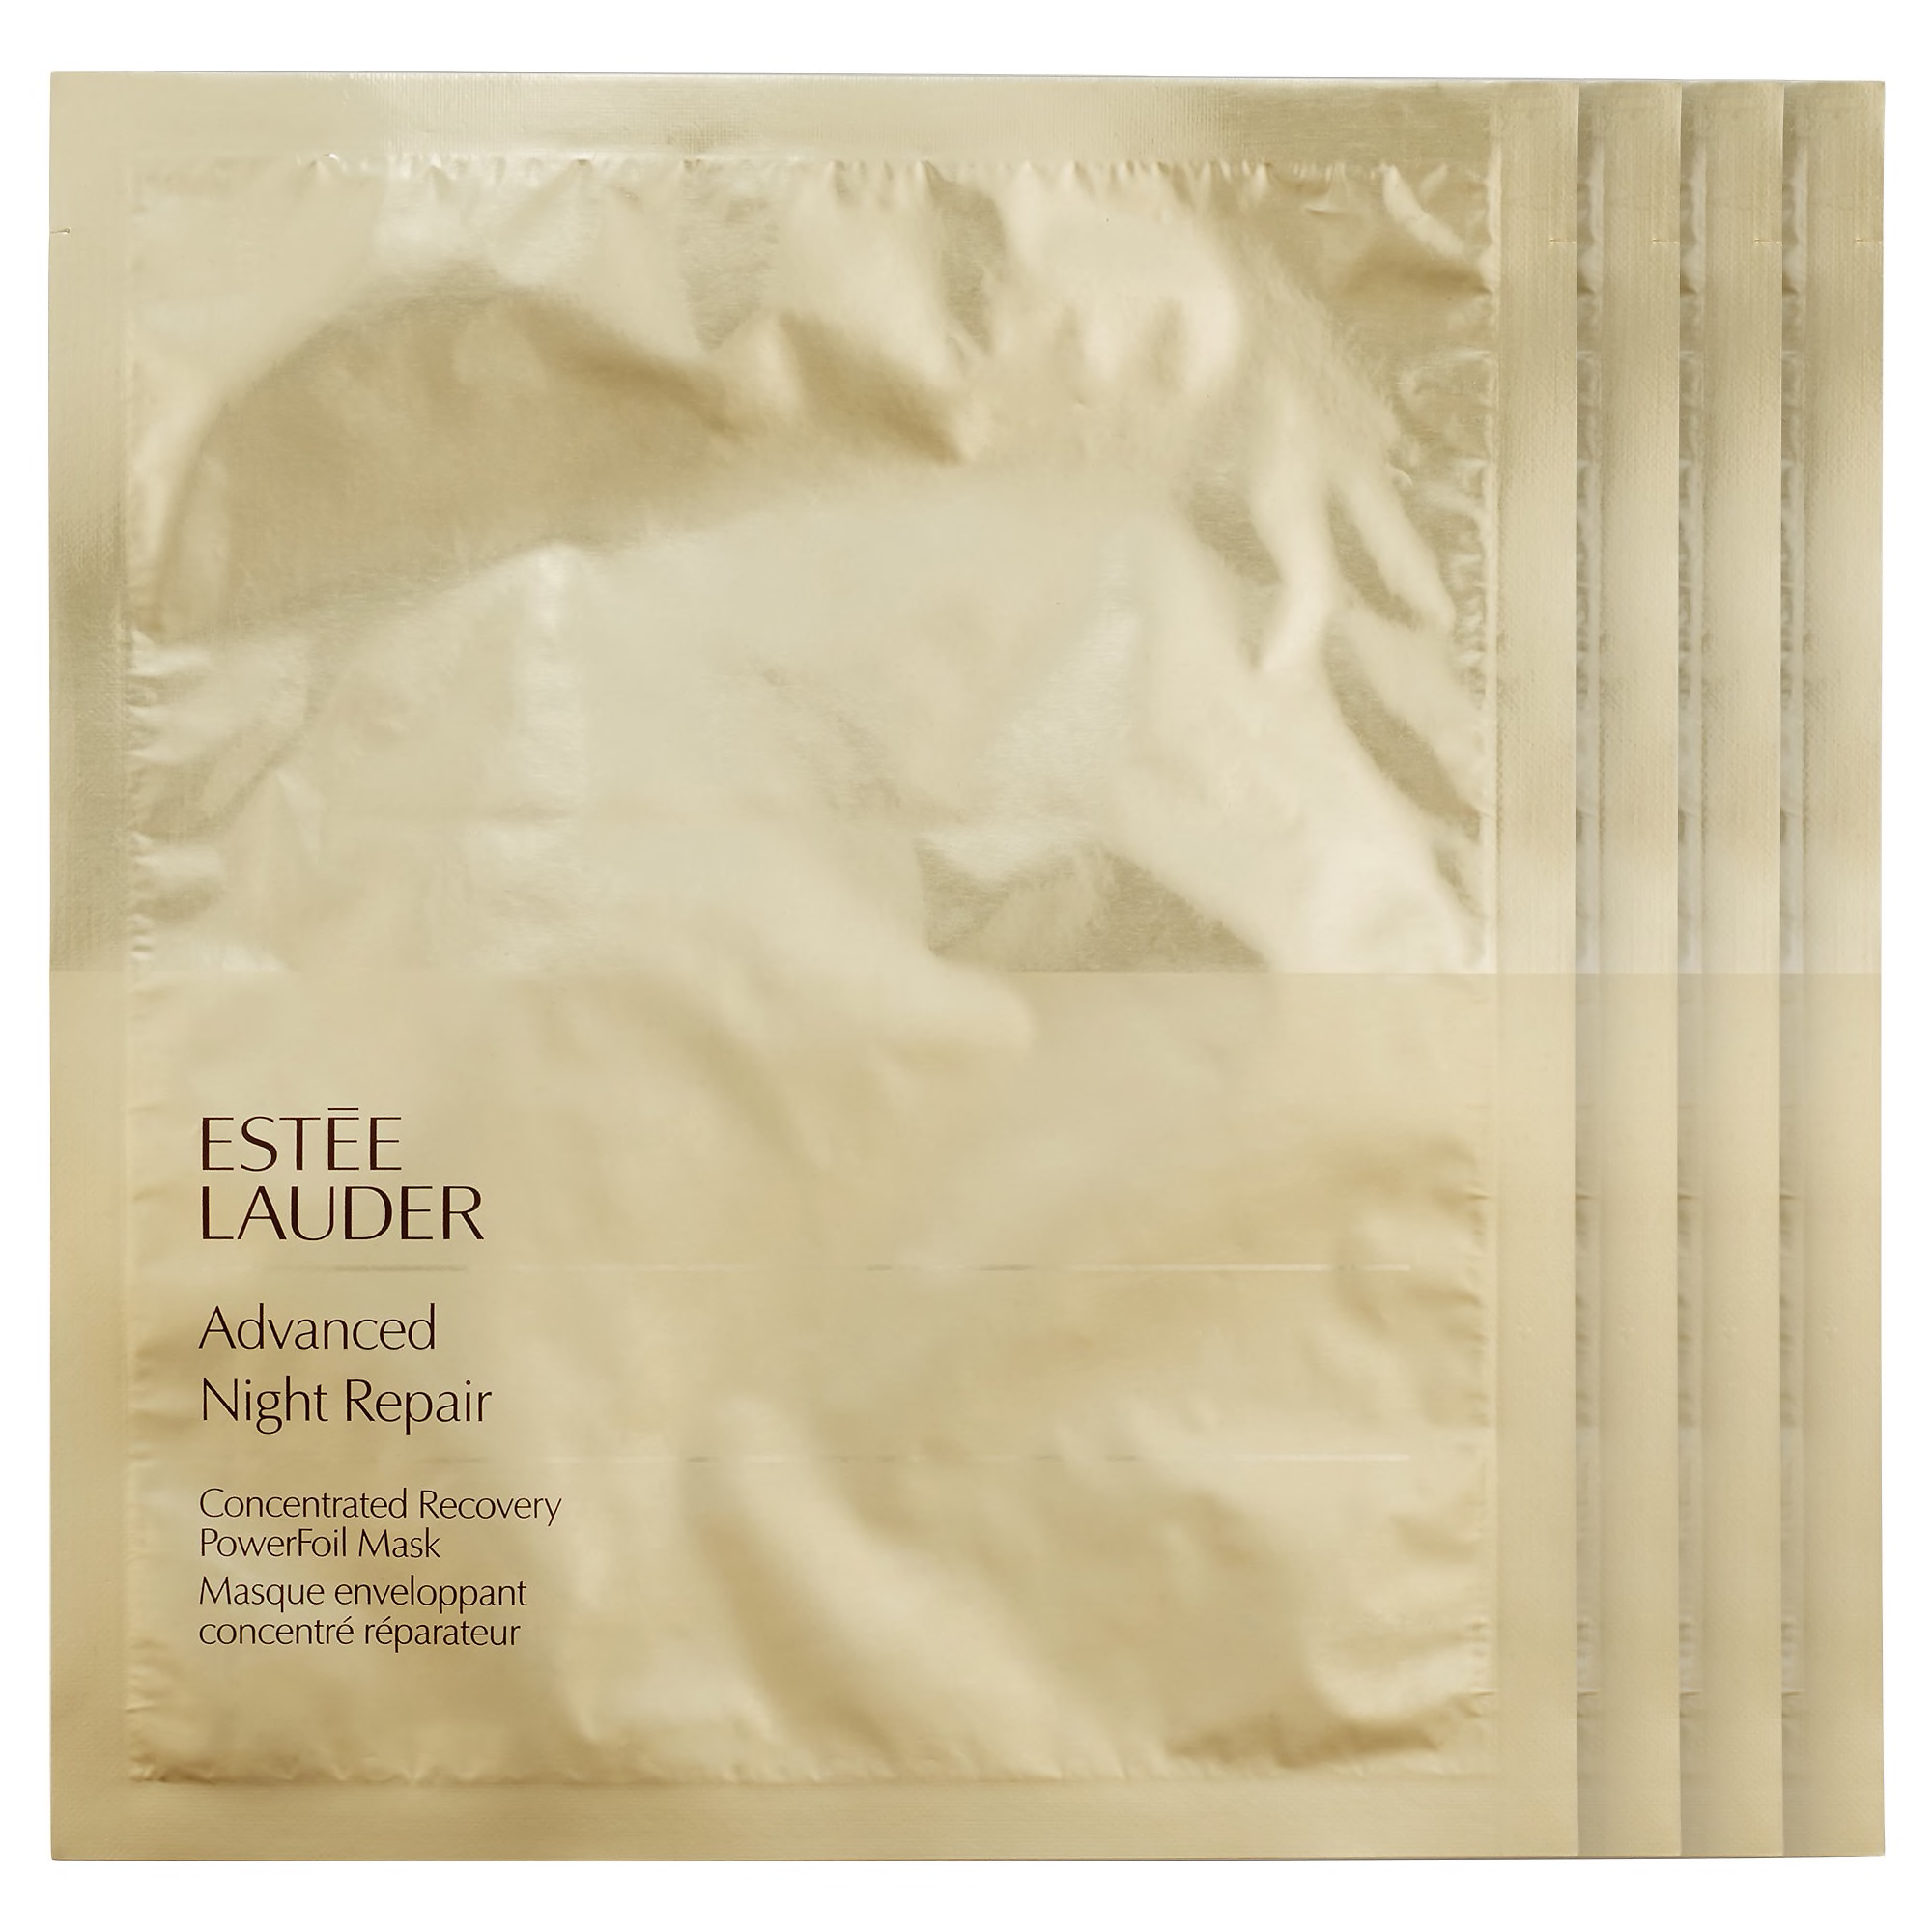 ESTEE_LAUDER_Advance_Night_Repair_Concentrated_Recovery_PowerFoil_Mask